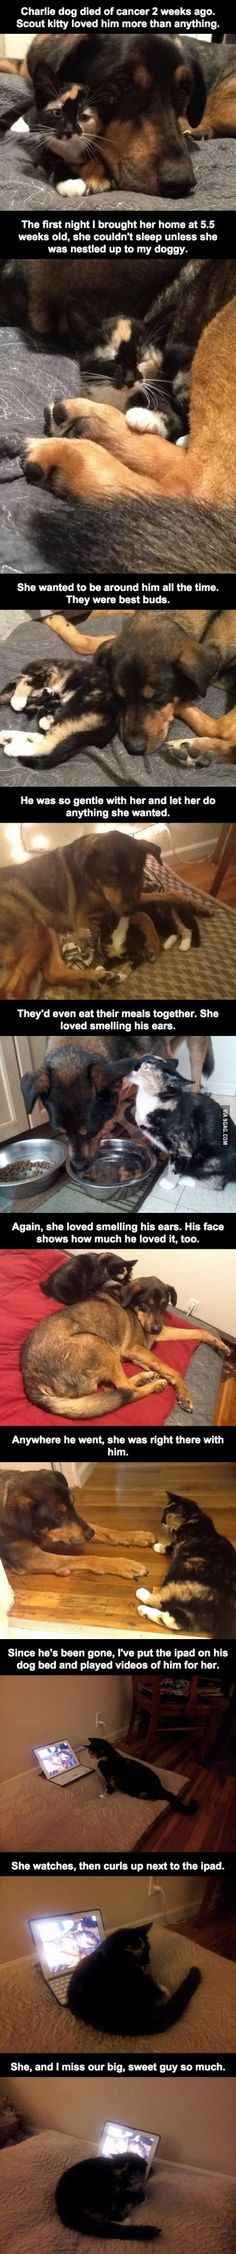 This will give you plenty of feels! #feelings #emotions #love #adorable #cats #dogs #friendship #missingyou